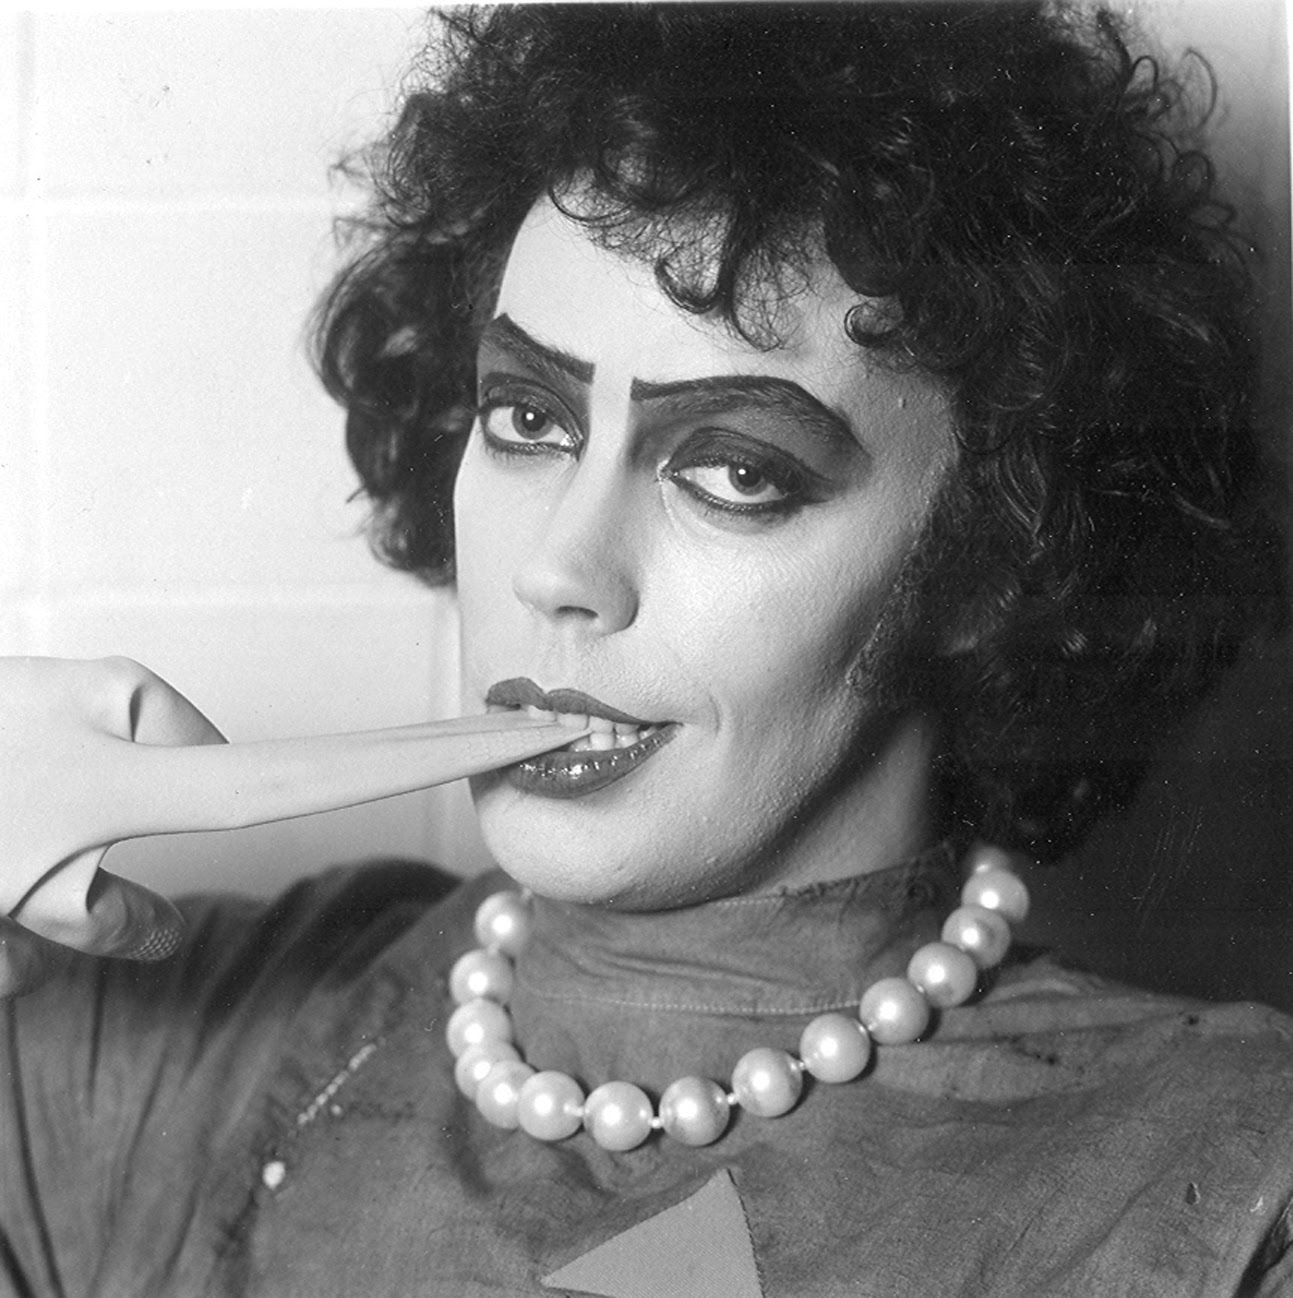 RockyMusic - Rocky Horror Picture Show (Still B&W Photo) image